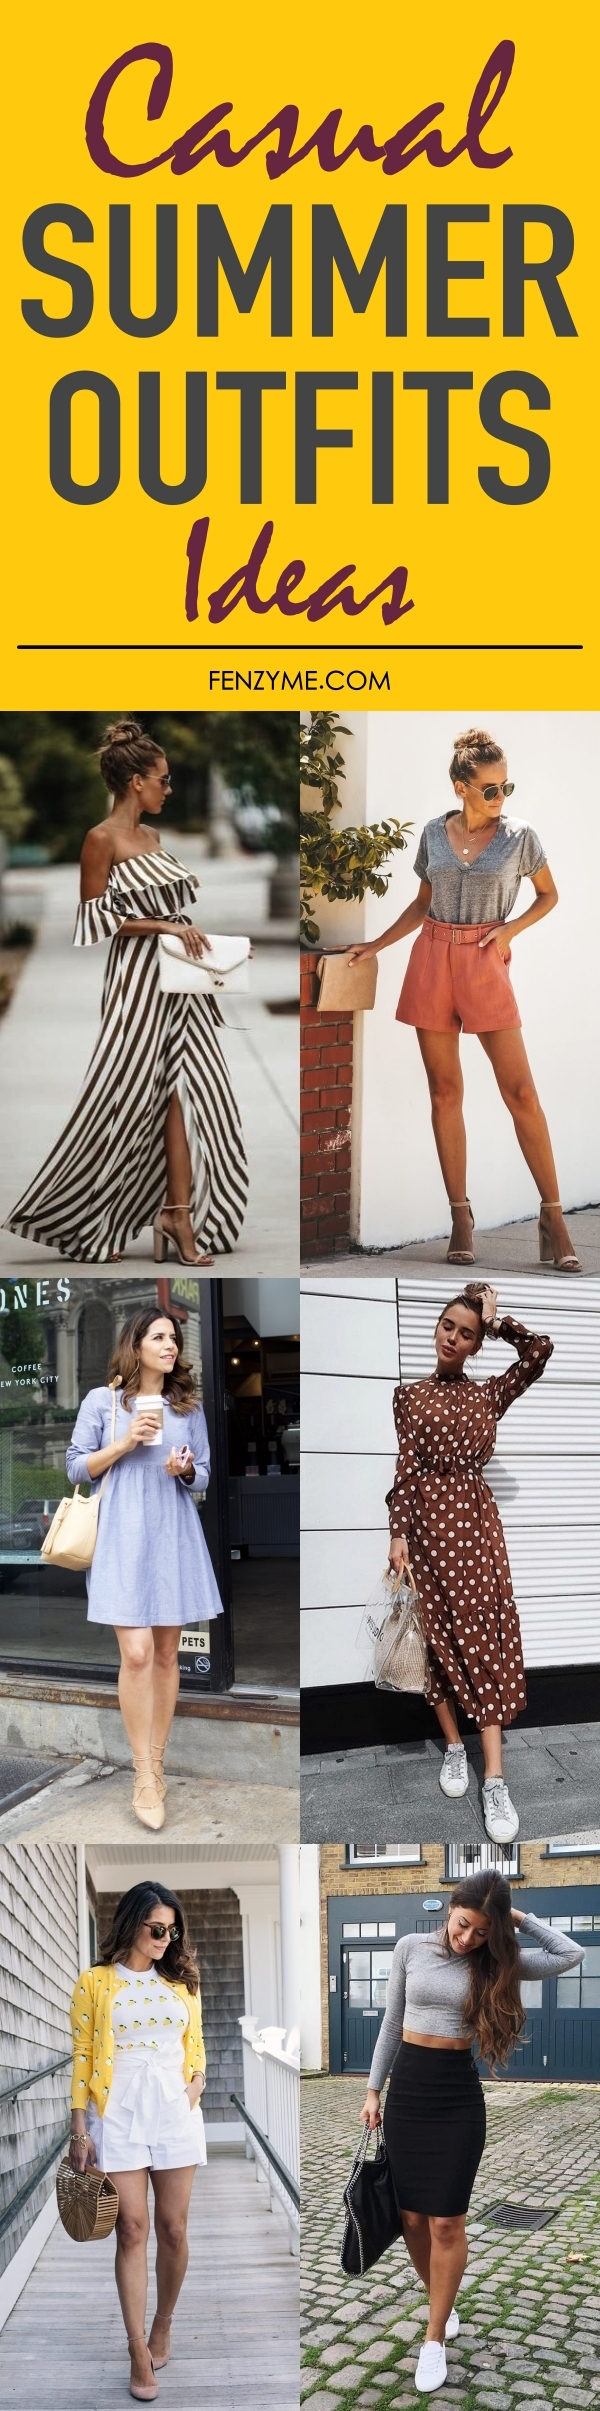 Casual Summer Outfits Ideas